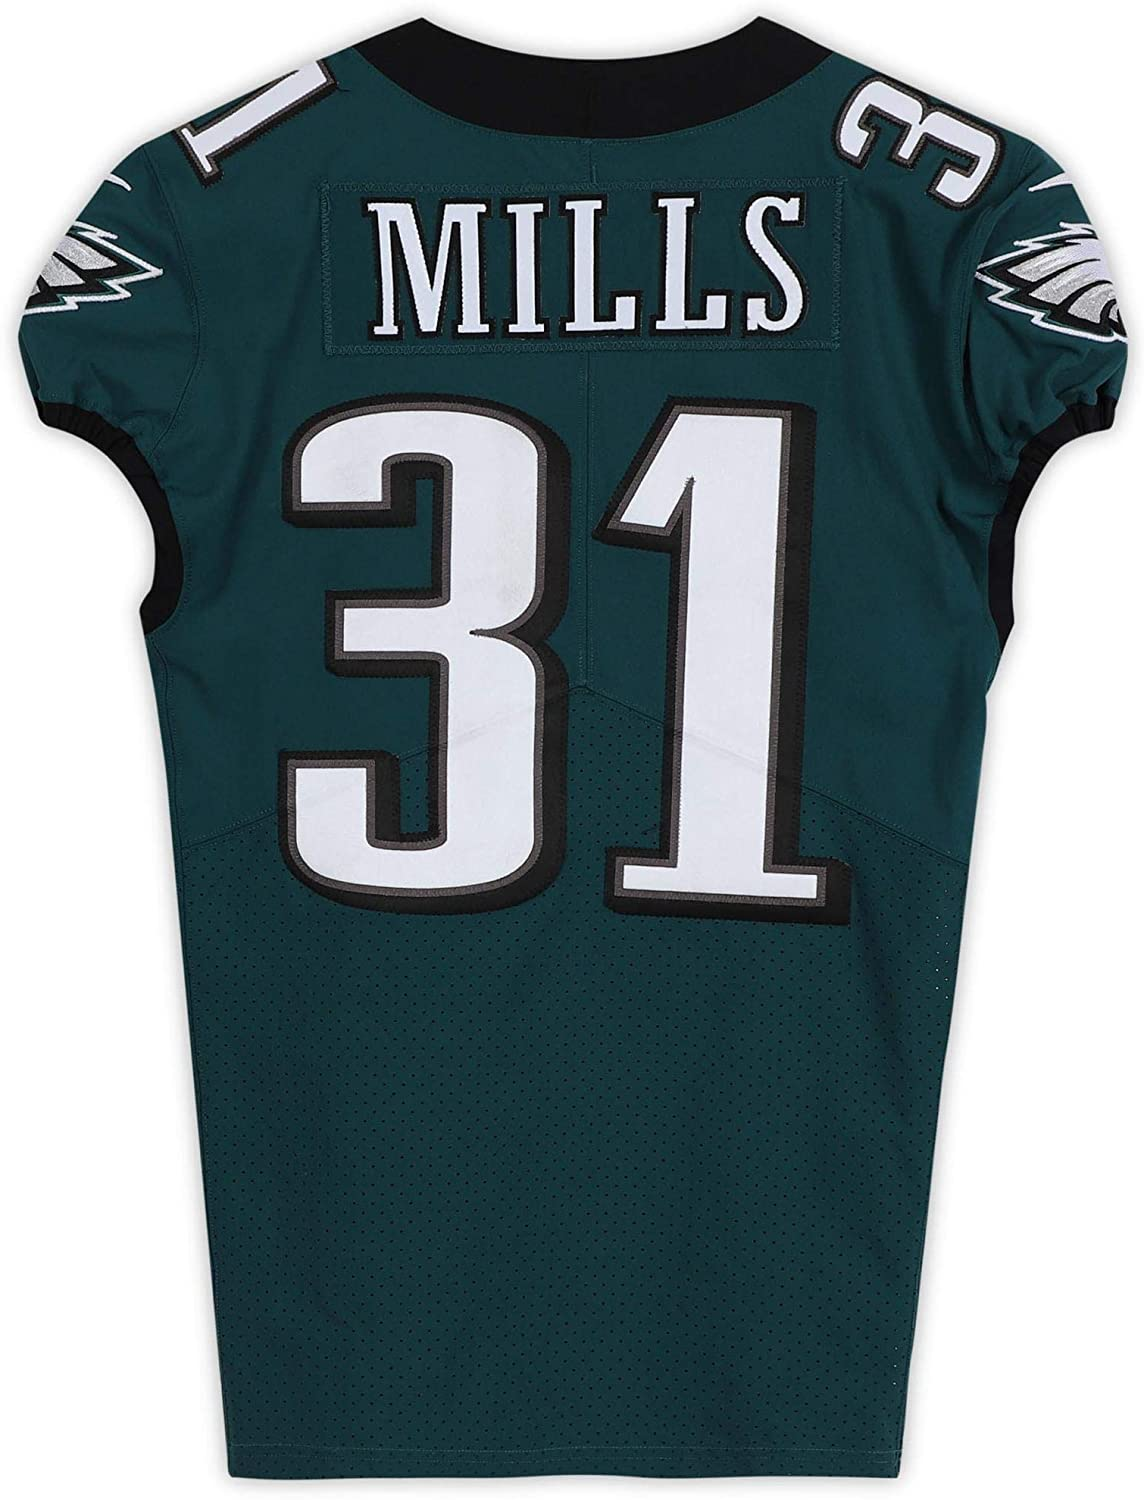 Jalen Mills Philadelphia Eagles Game-Used #31 Green Jersey from the 2019-20 NFL Season - Size 38+4 - Fanatics Authentic Certified